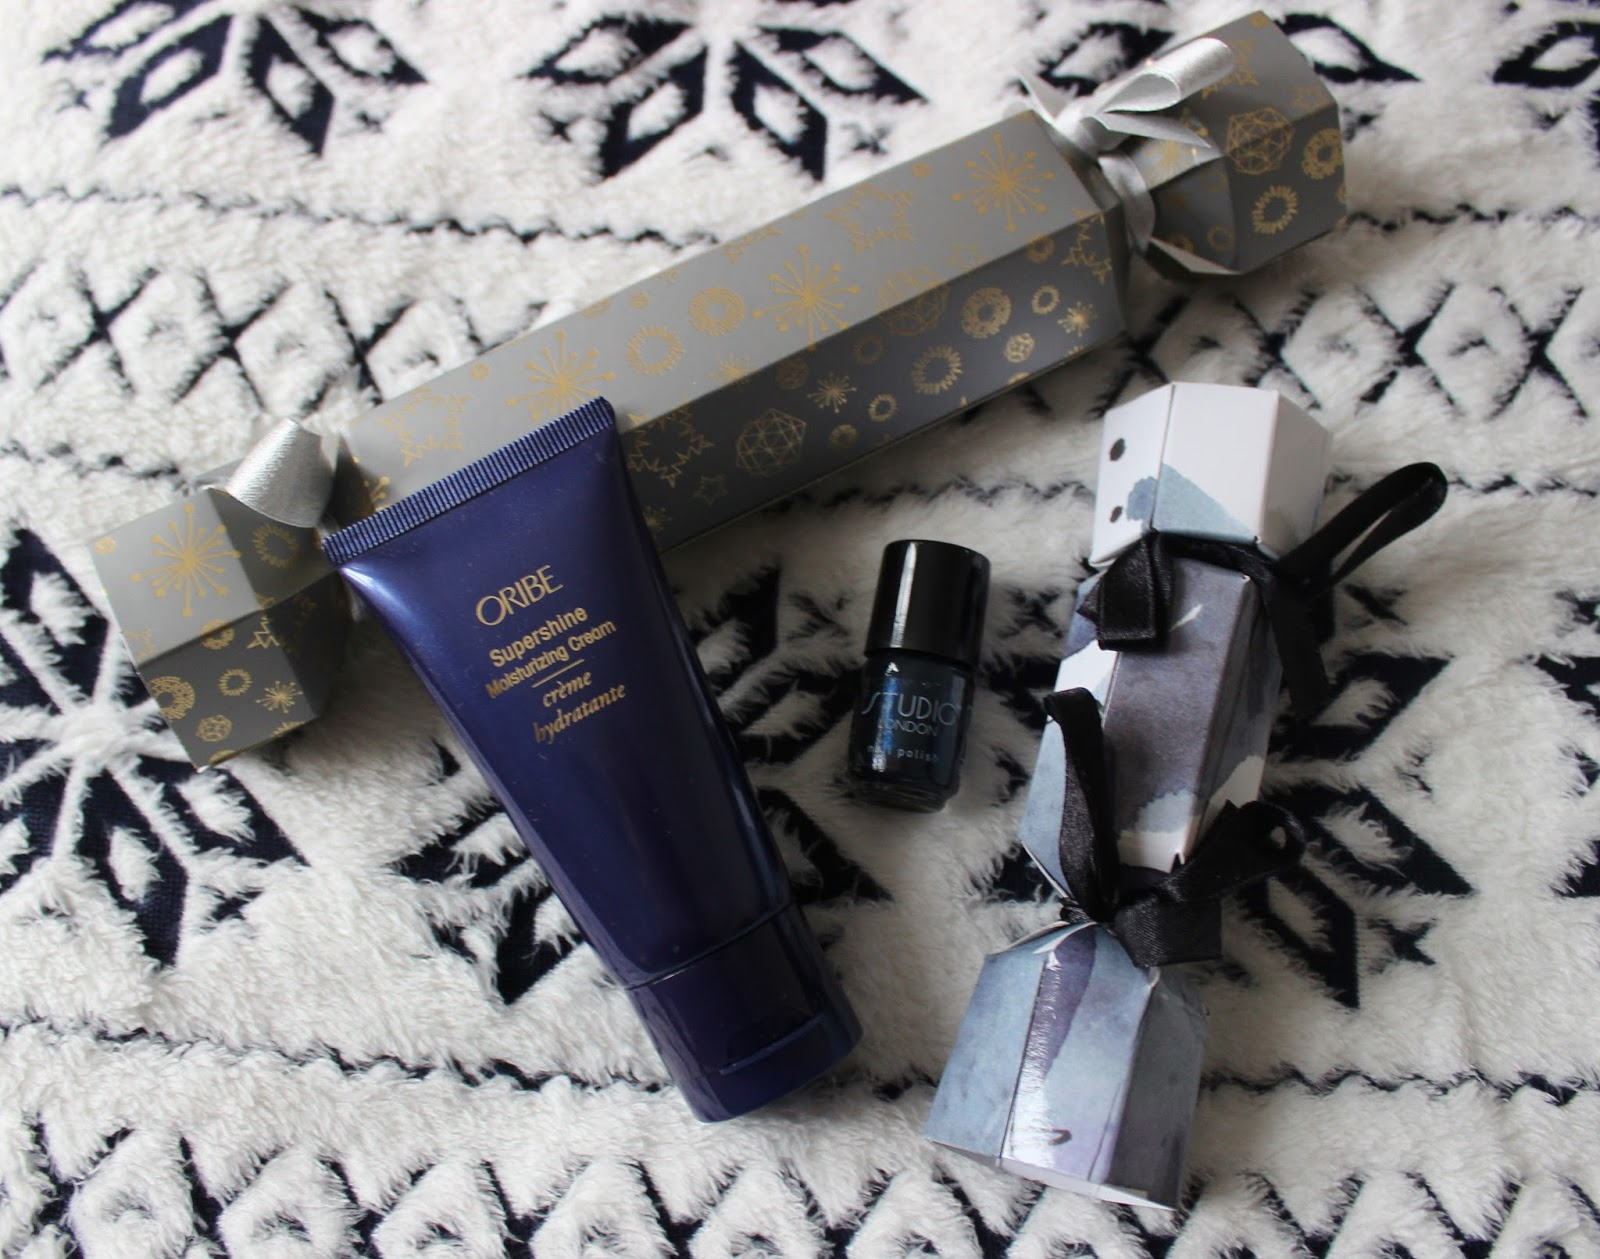 beauty christmas crackers from space nk and studio